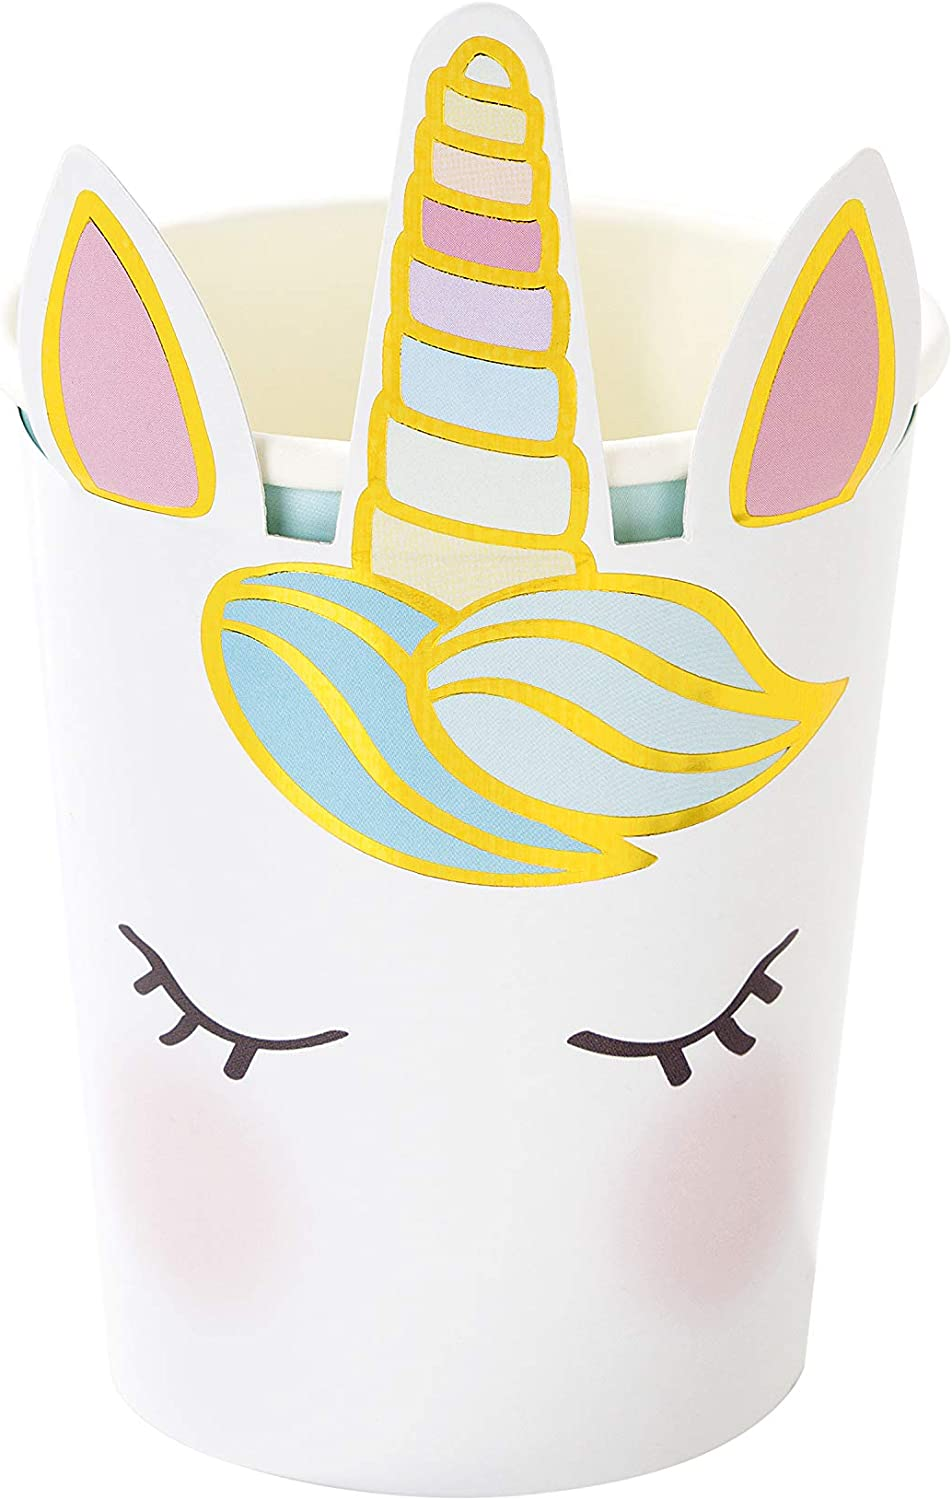 Unicorn Paper Cups for 8 Guests